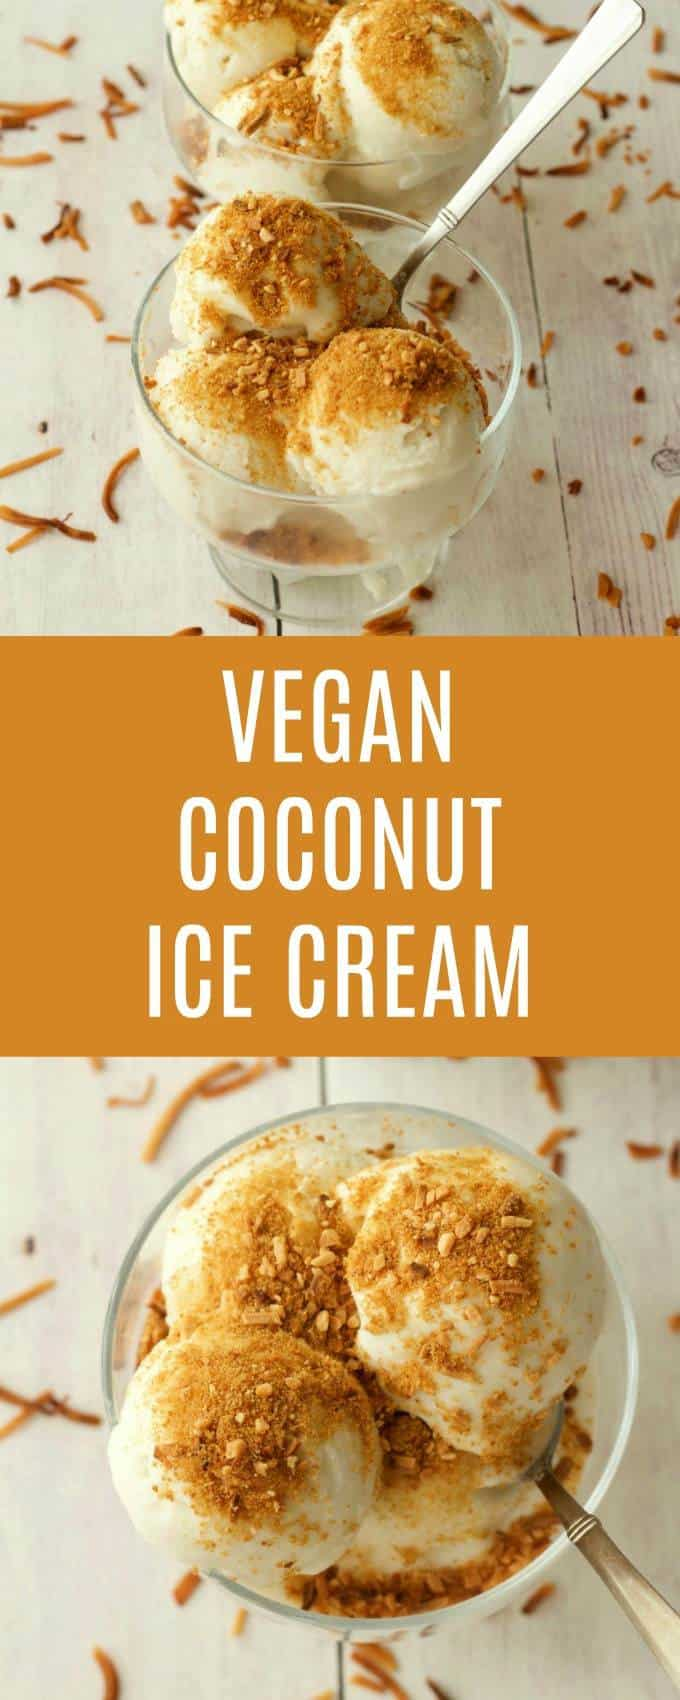 Smooth and ultra-creamy coconut ice cream with toasted coconut topping. Dairy-free, gluten-free, vegan and unbelievably good! Vegan | Vegan Ice Cream | Vegan Desserts | lovingitvegan.com